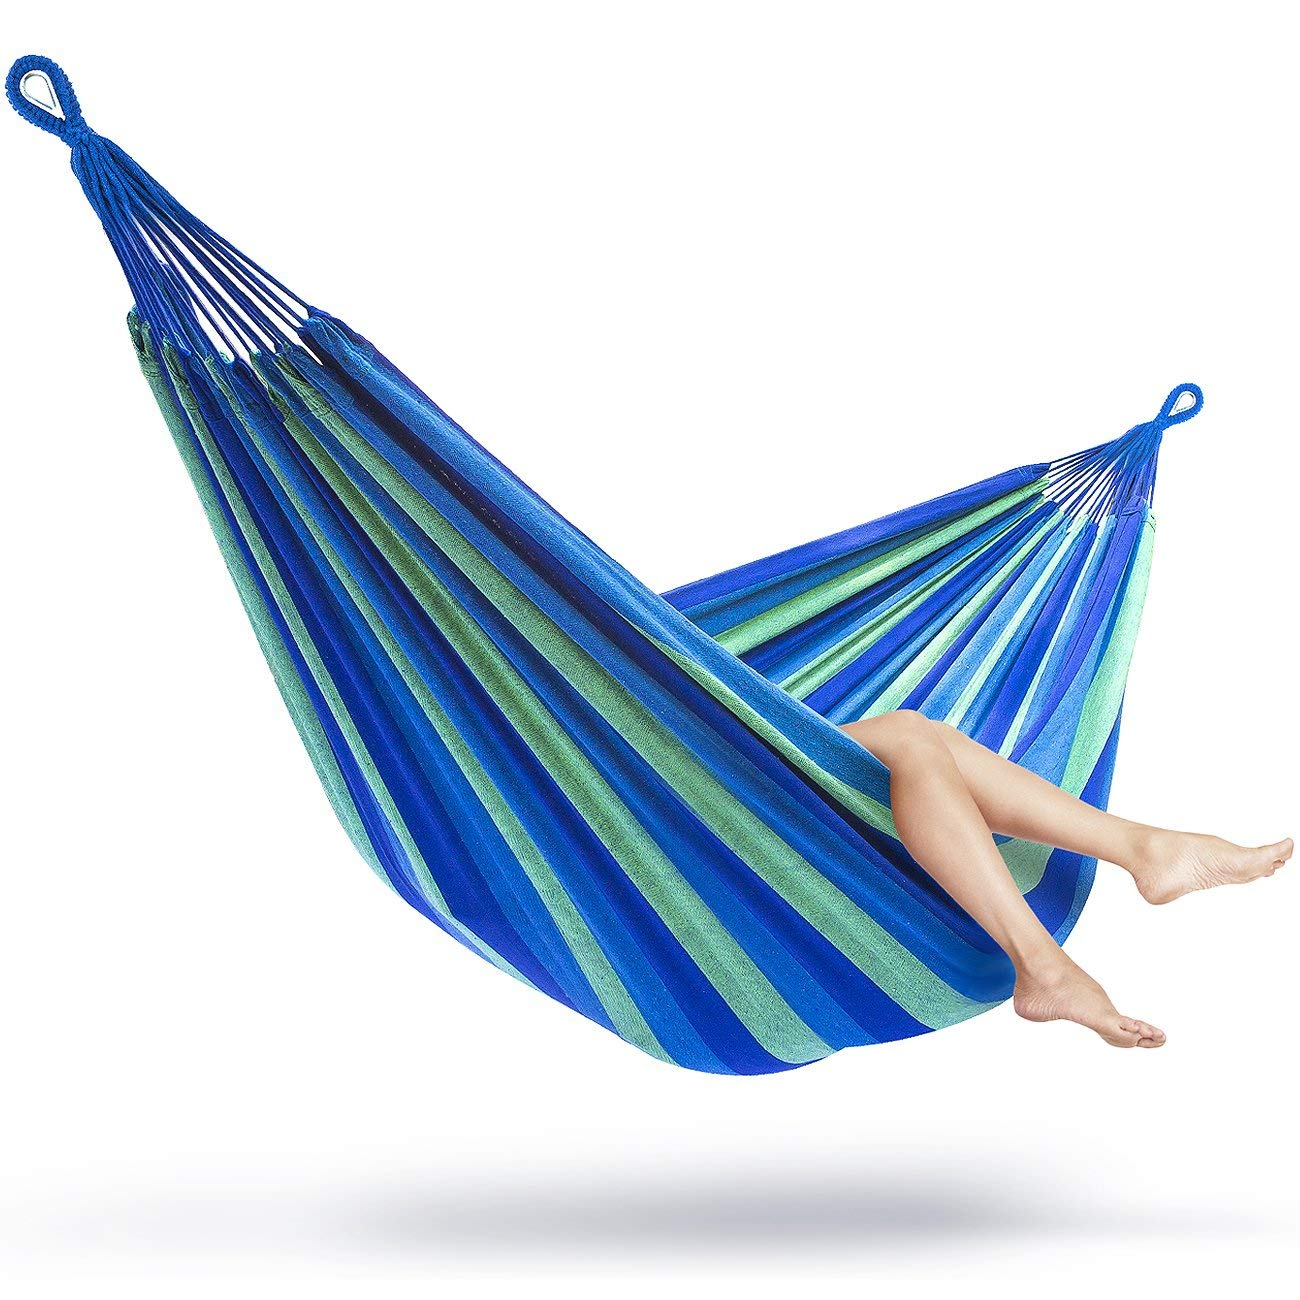 Indoor Outdoor Hammock w Steel Reinforced Loops & Suspension Straps w carabiners for Easy Hanging. Max Weight 250. Lagoon - Blue Green Turquoise Vibrant Beautiful Color Pallet